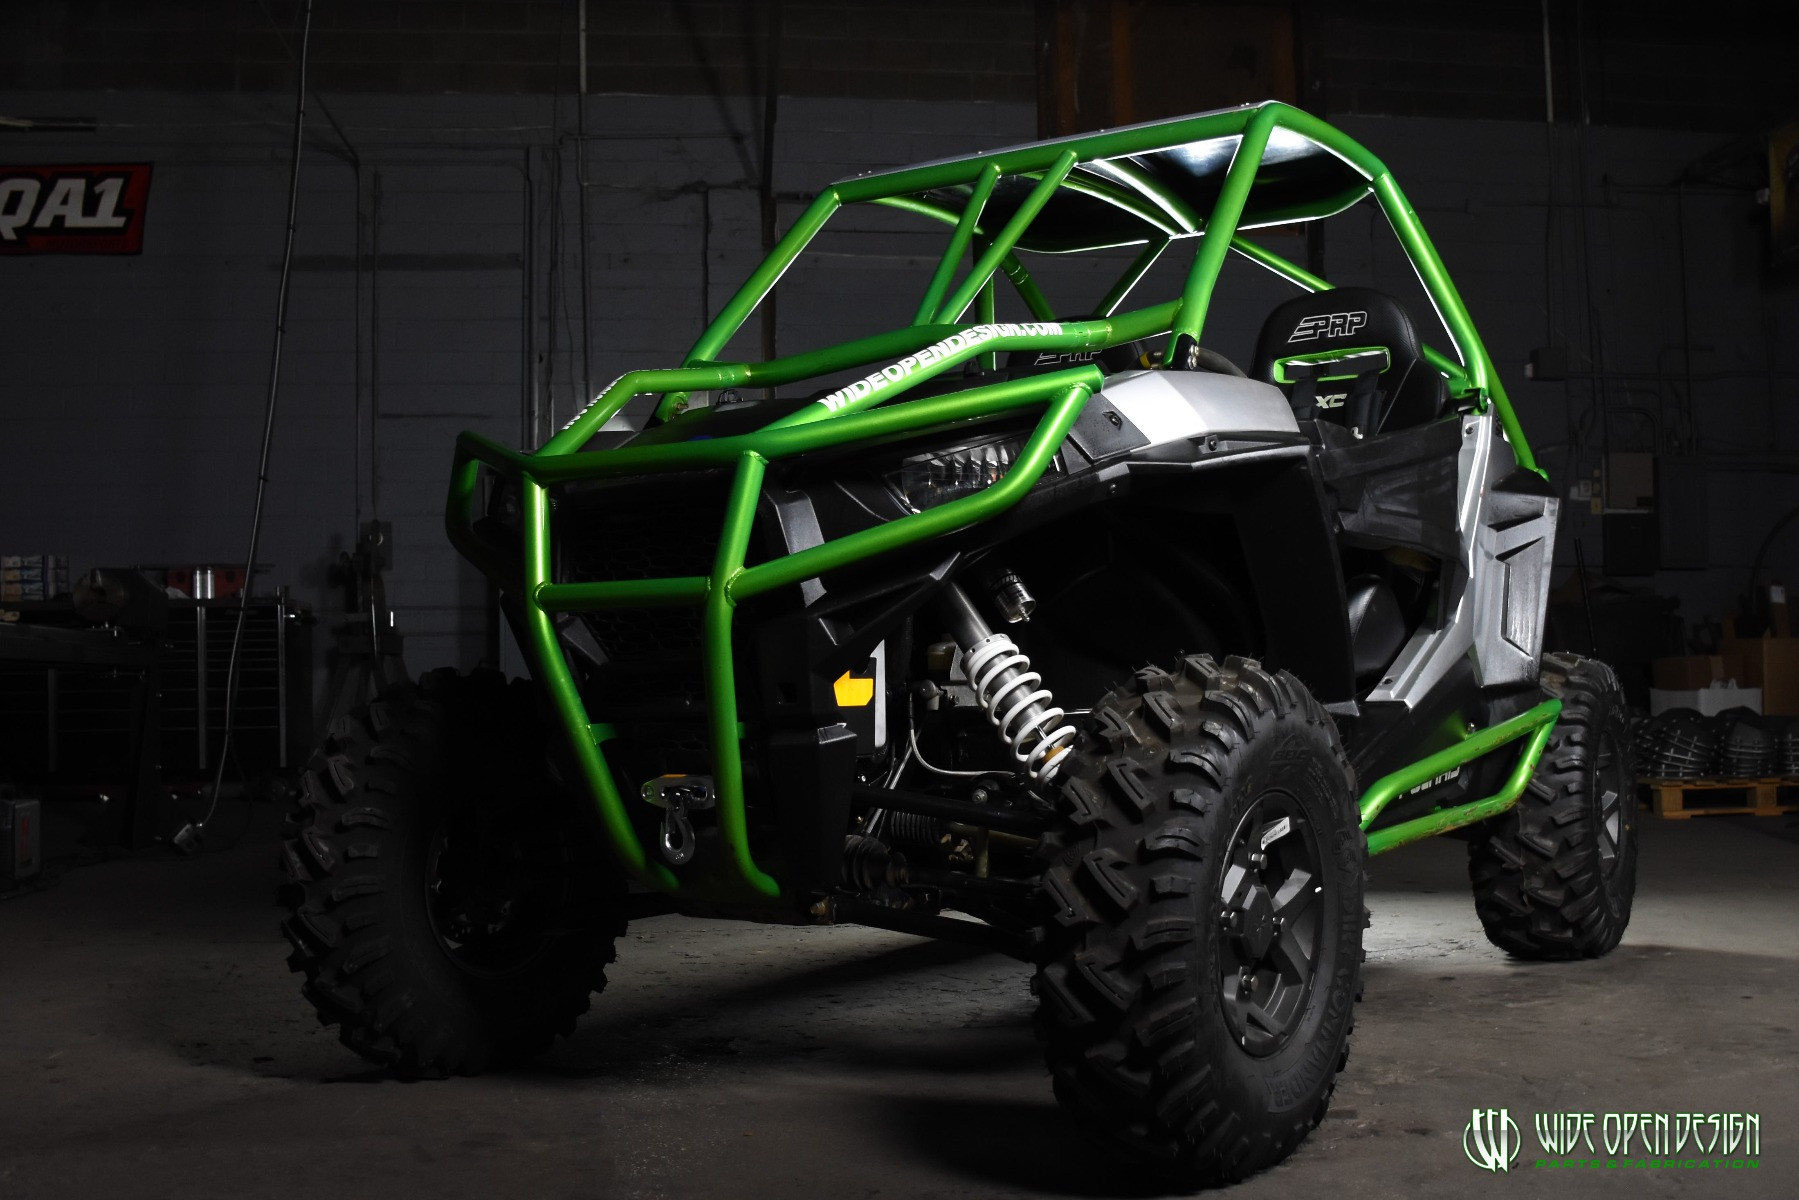 Jason's 1000s RZR with Wide Open Design Rolled Roof Cage, Front Bumper with Tie In, and Rocker Guards 3